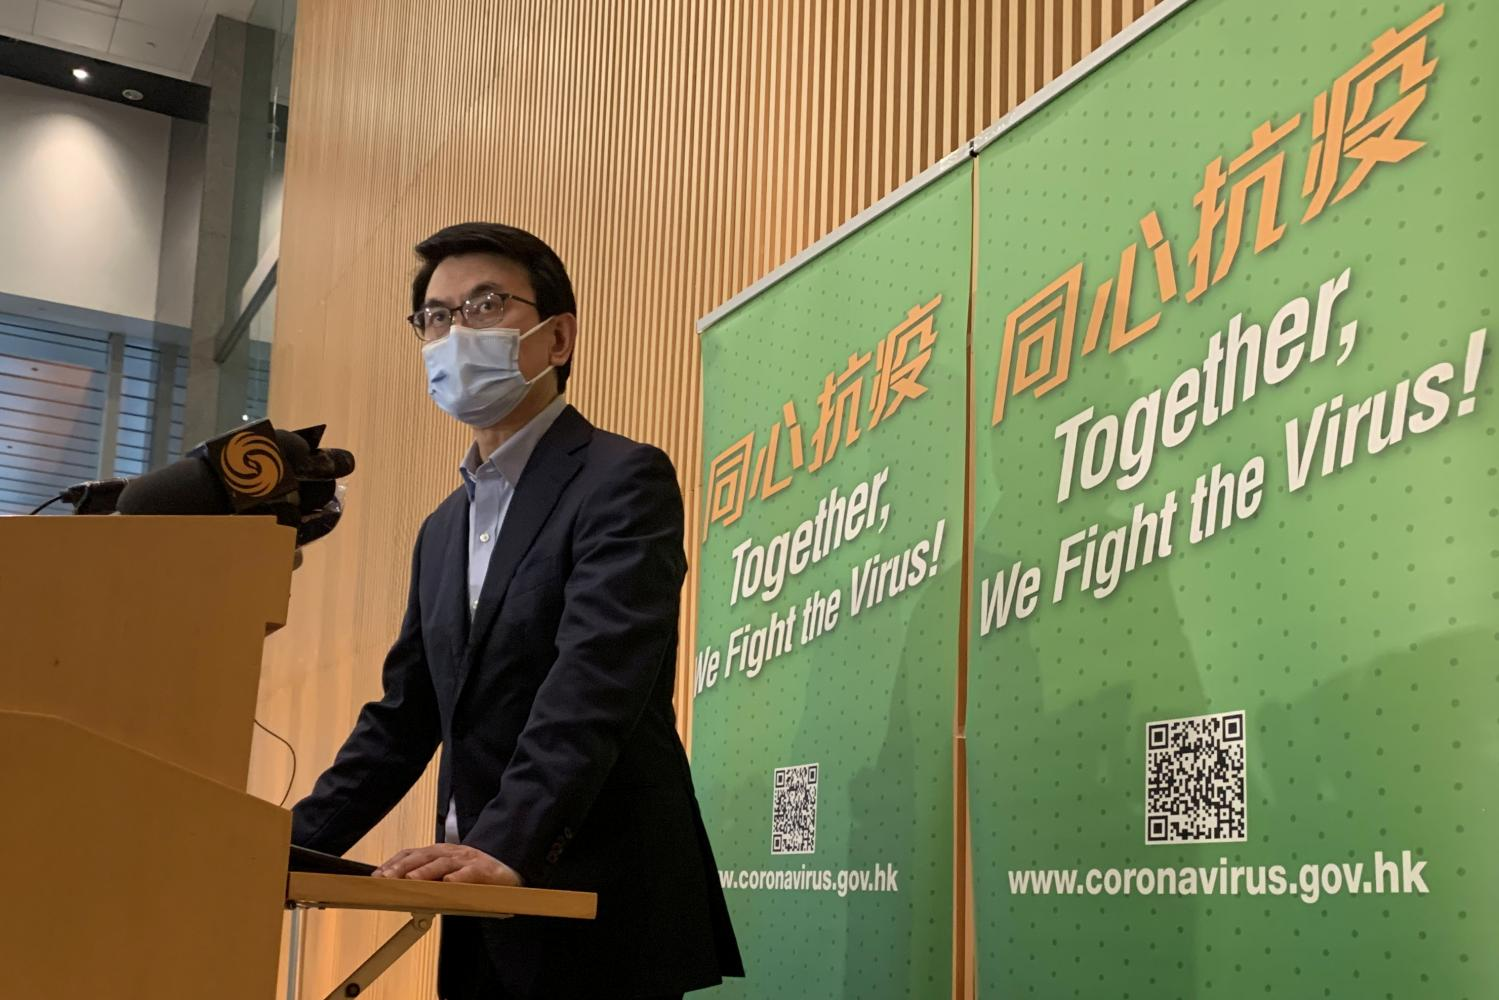 Hong Kong's Secretary for Commerce and Economic Development Edward Yau speaks to the media on a two-week postponement of the travel bubble between Hong Kong and Singapore, following a rise in Covid-19 cases in Hong Kong on Saturday.(Reuters photo)